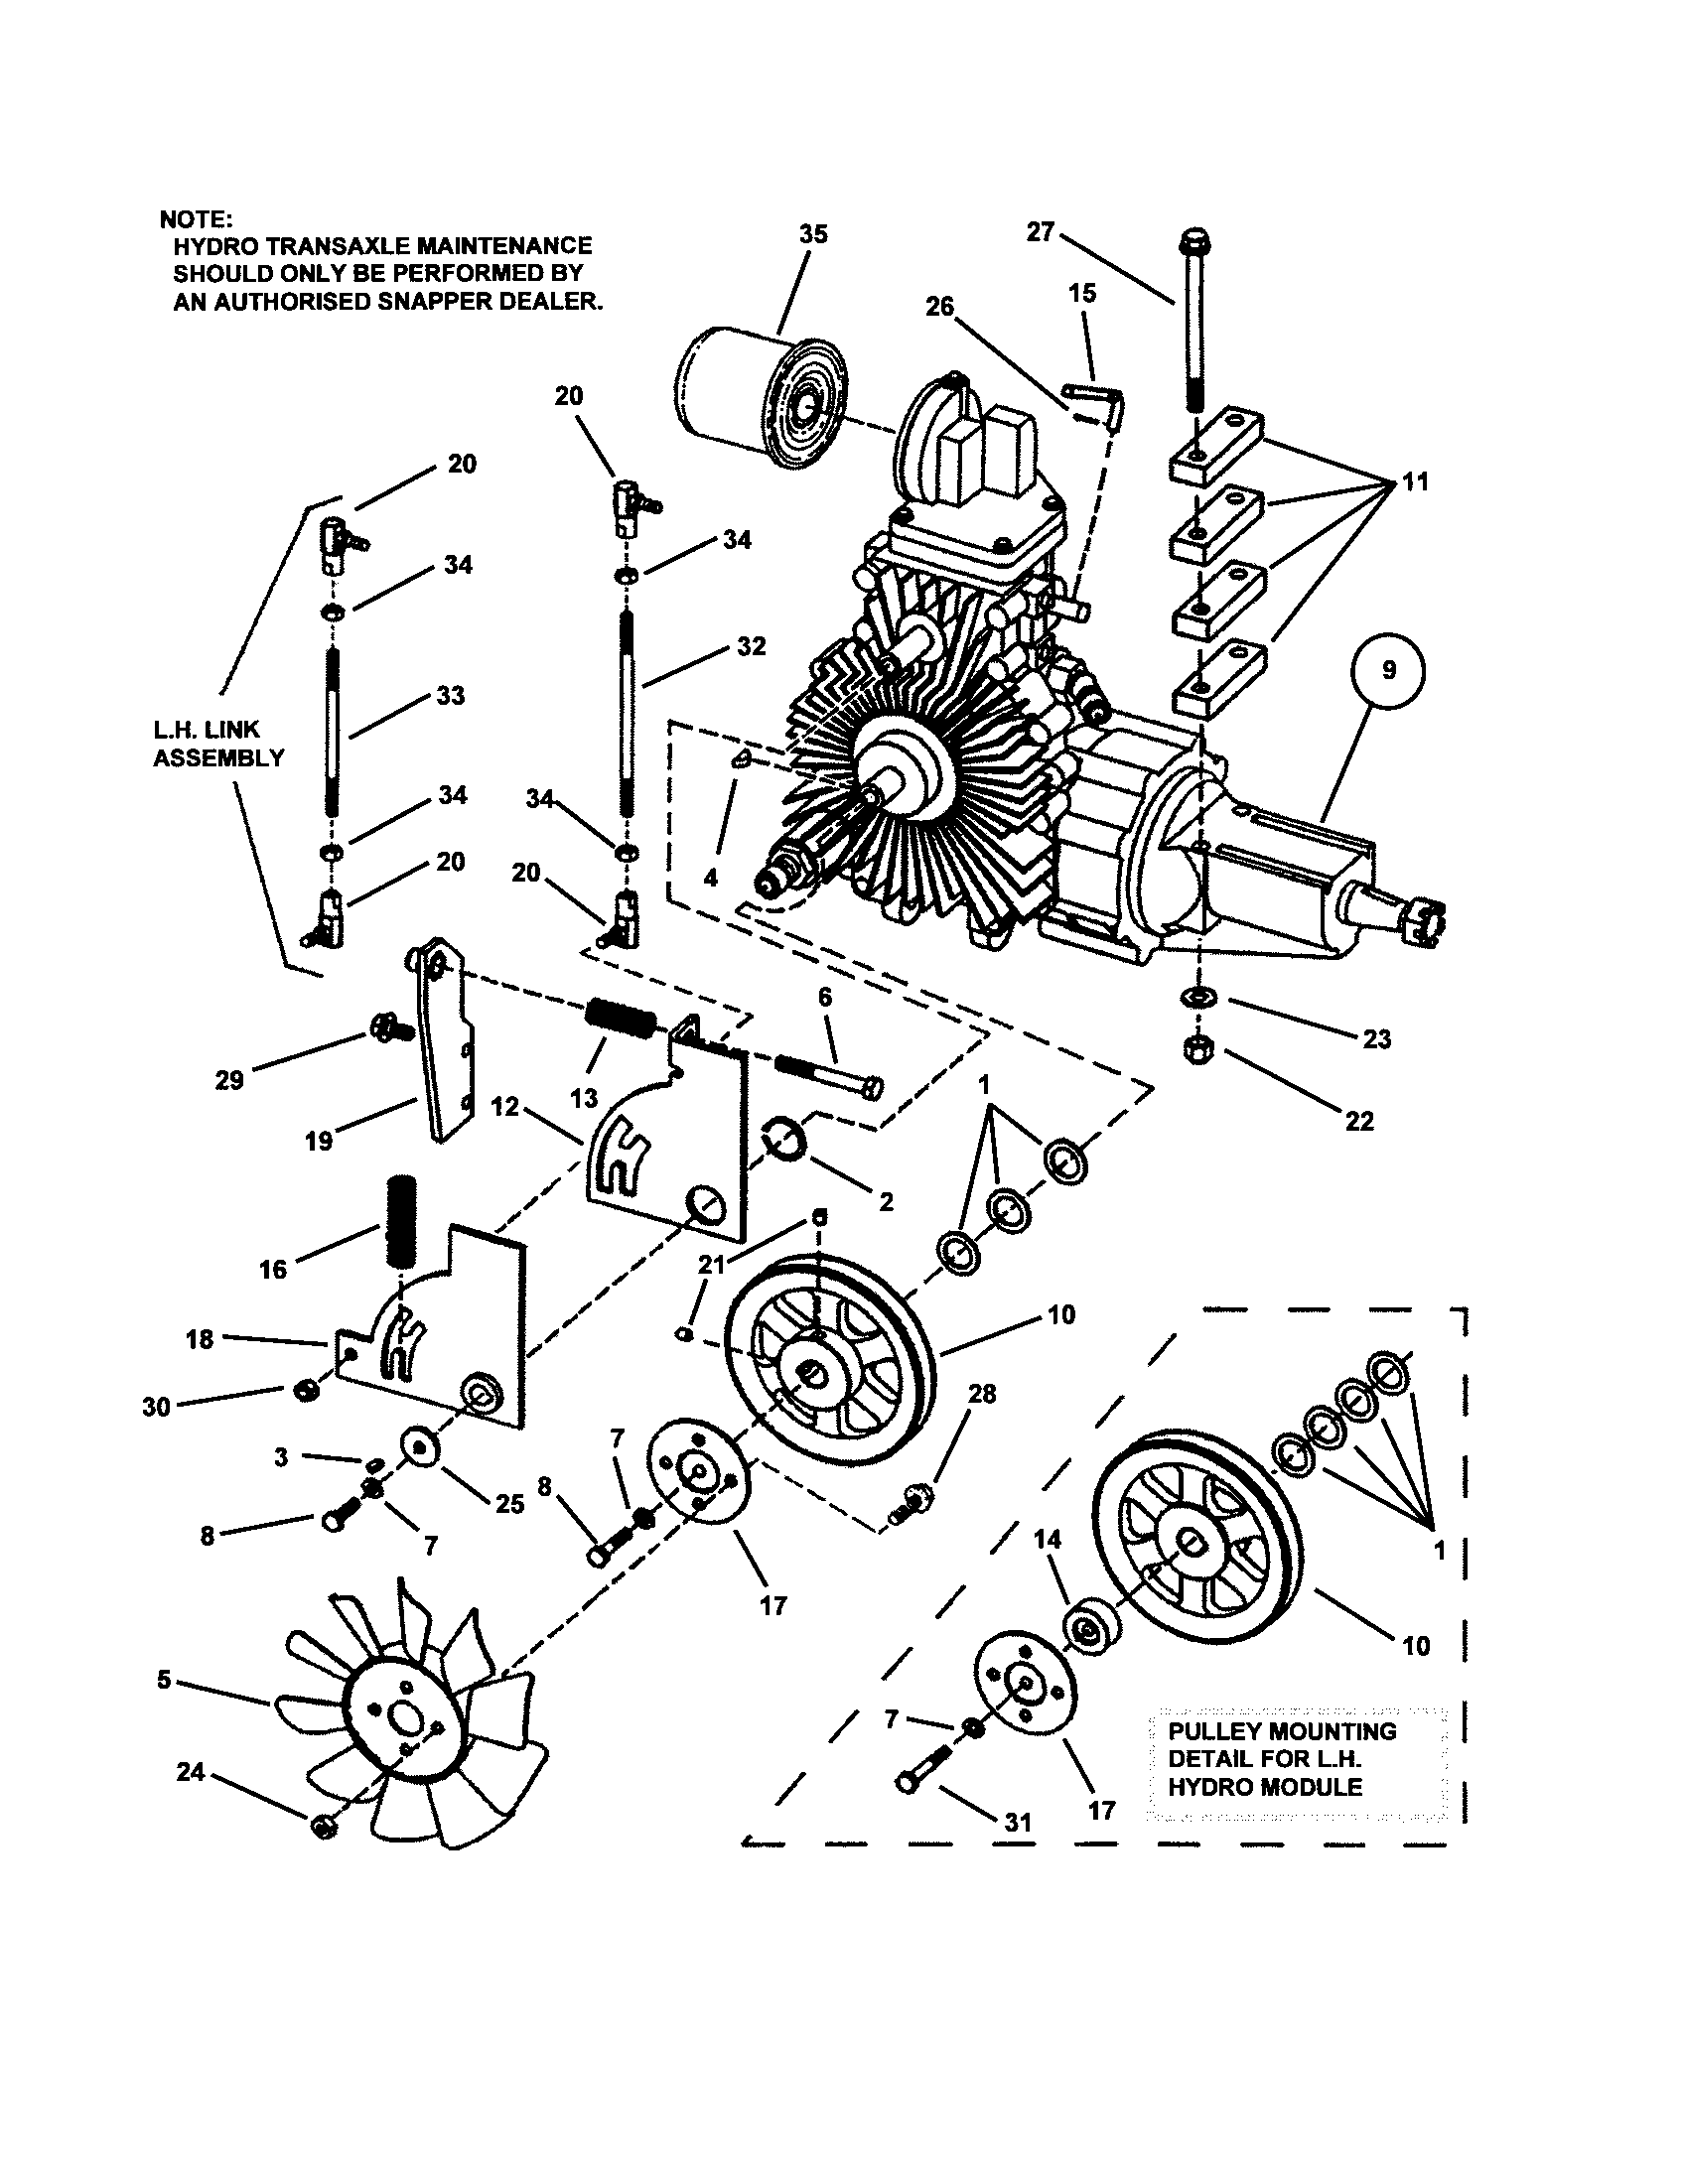 Wiring Diagram For 1990 Snapper Front Engine Riding Lawn Mower Model